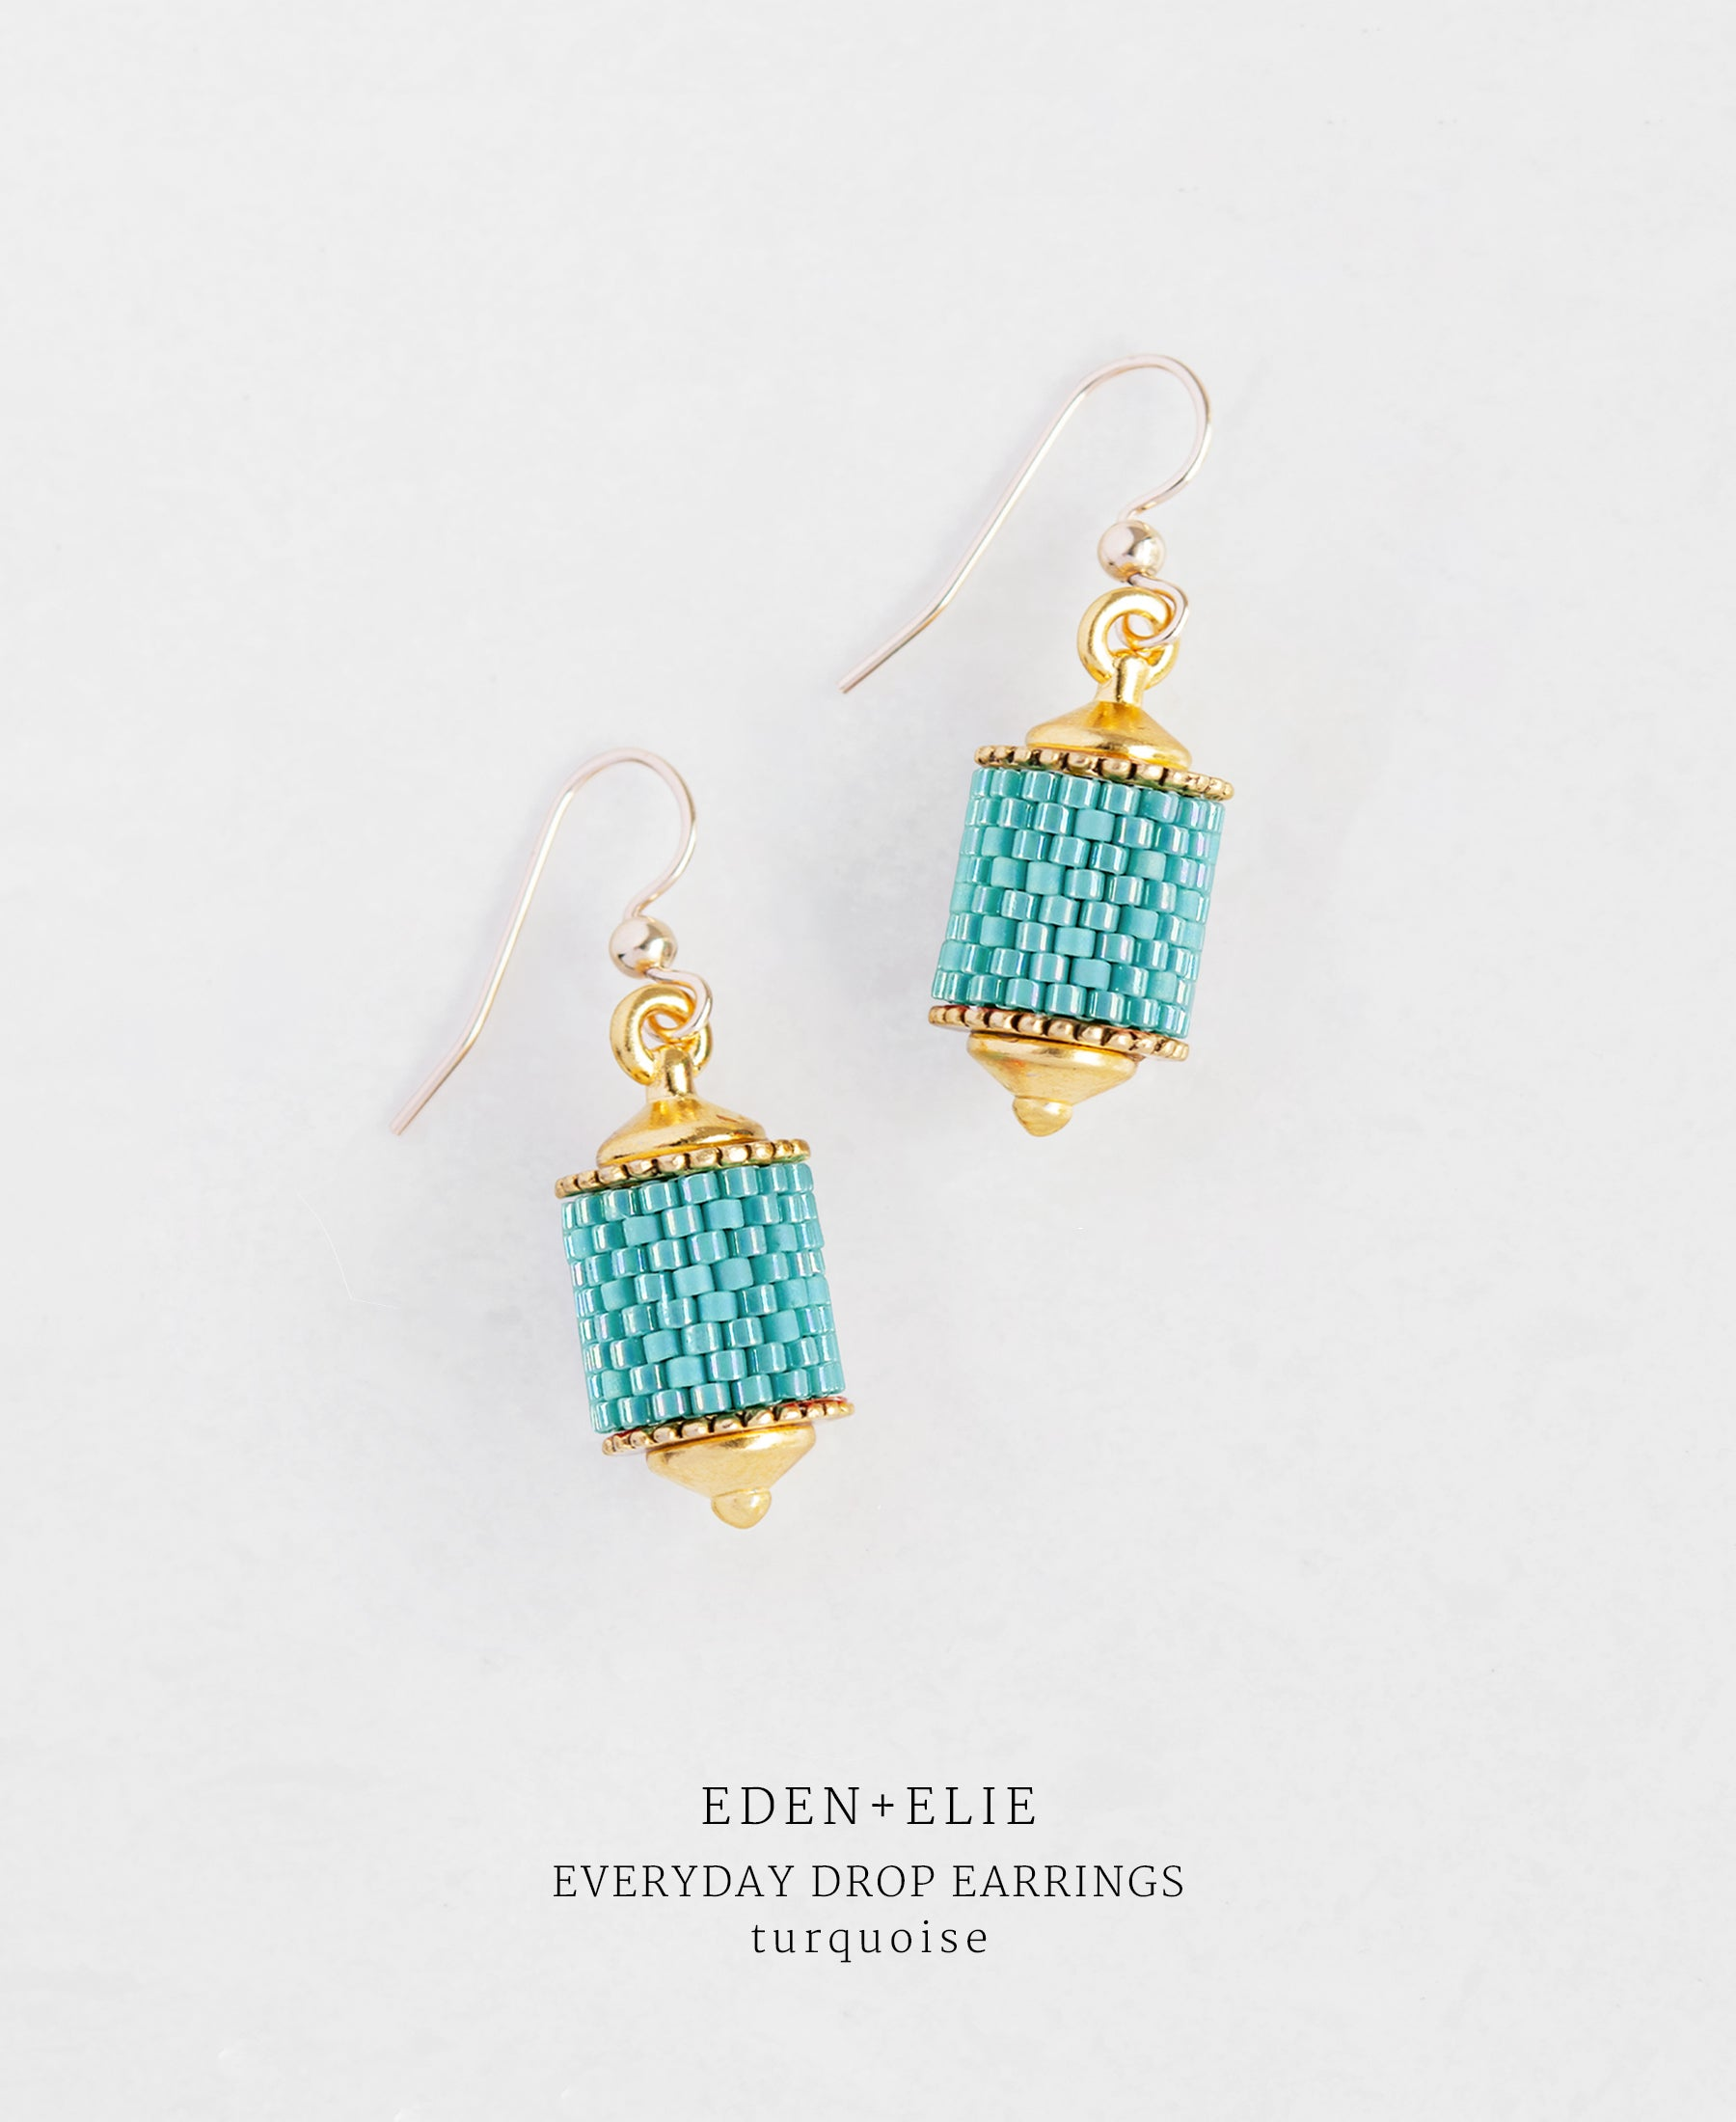 EDEN + ELIE Everyday drop earrings - turquoise